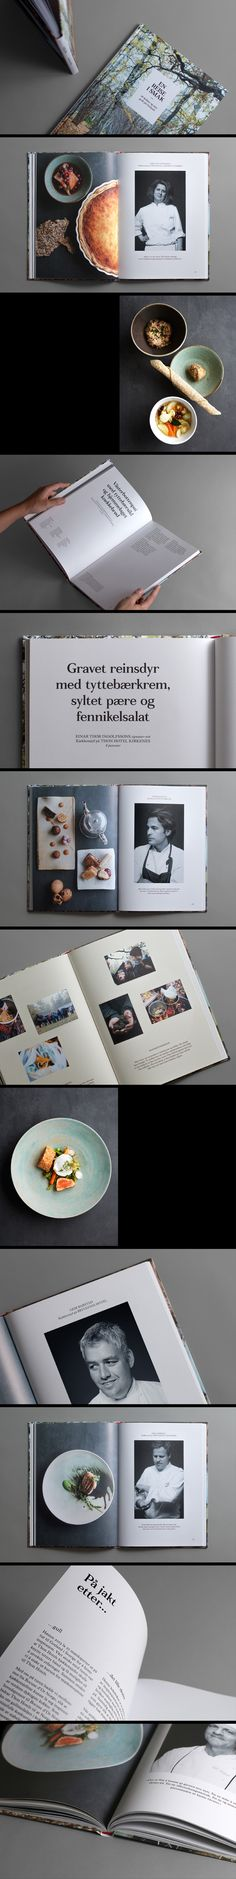 Thon Hotels Cookbook on Editorial Design Served. Nice images with non colors, simple and elegant